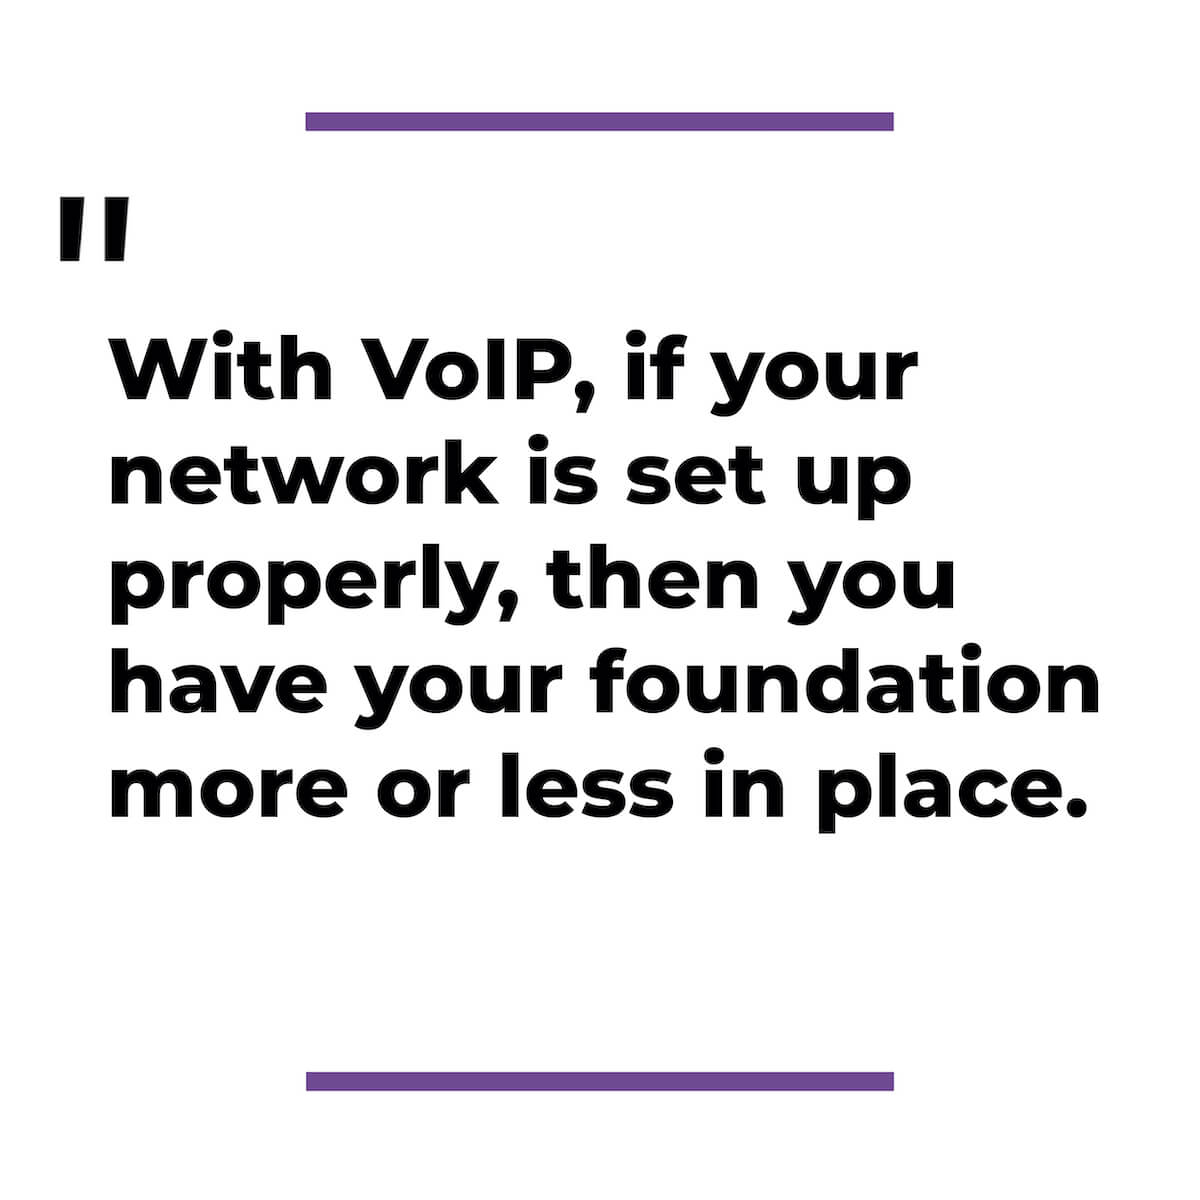 With Voip, all you need is a strong network